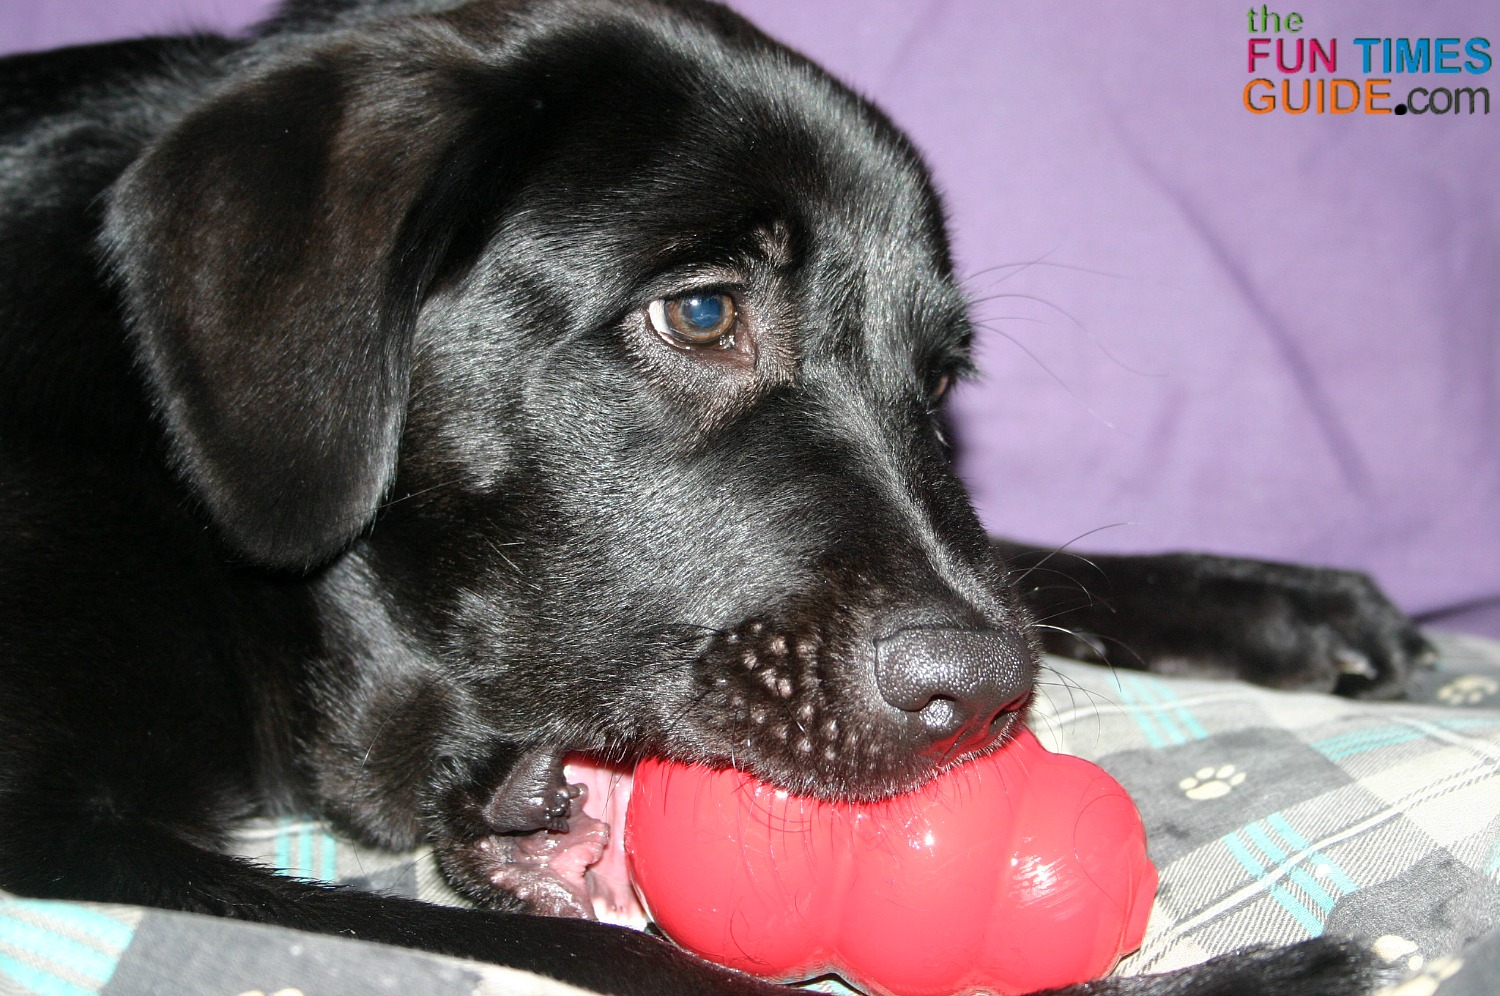 My dogs have always been huge fans of classic Kong toys filled with tasty treats inside.